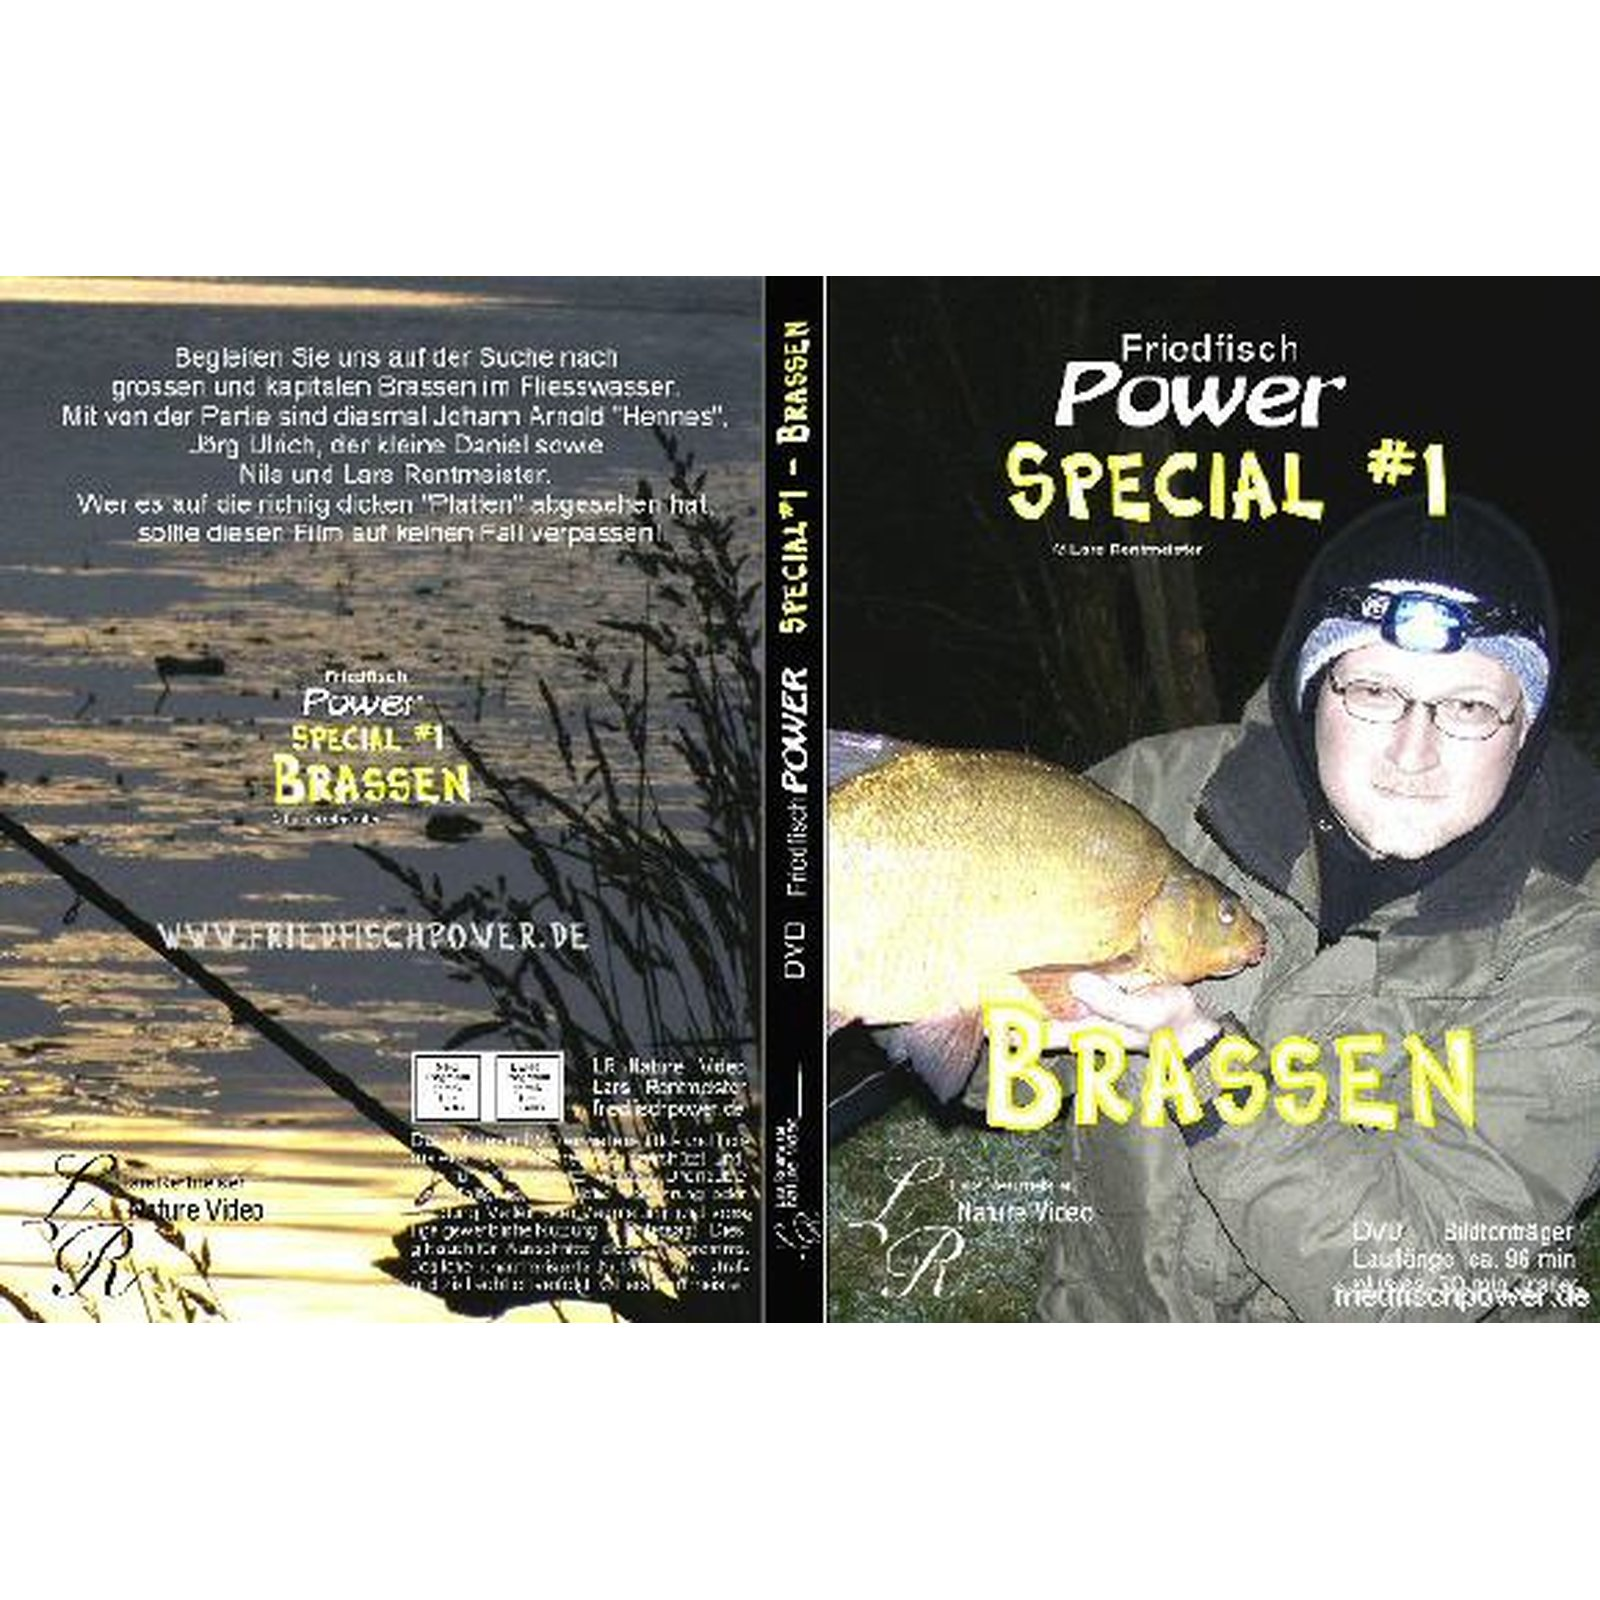 Friedfisch Power Special #1 - Brassen - DVD